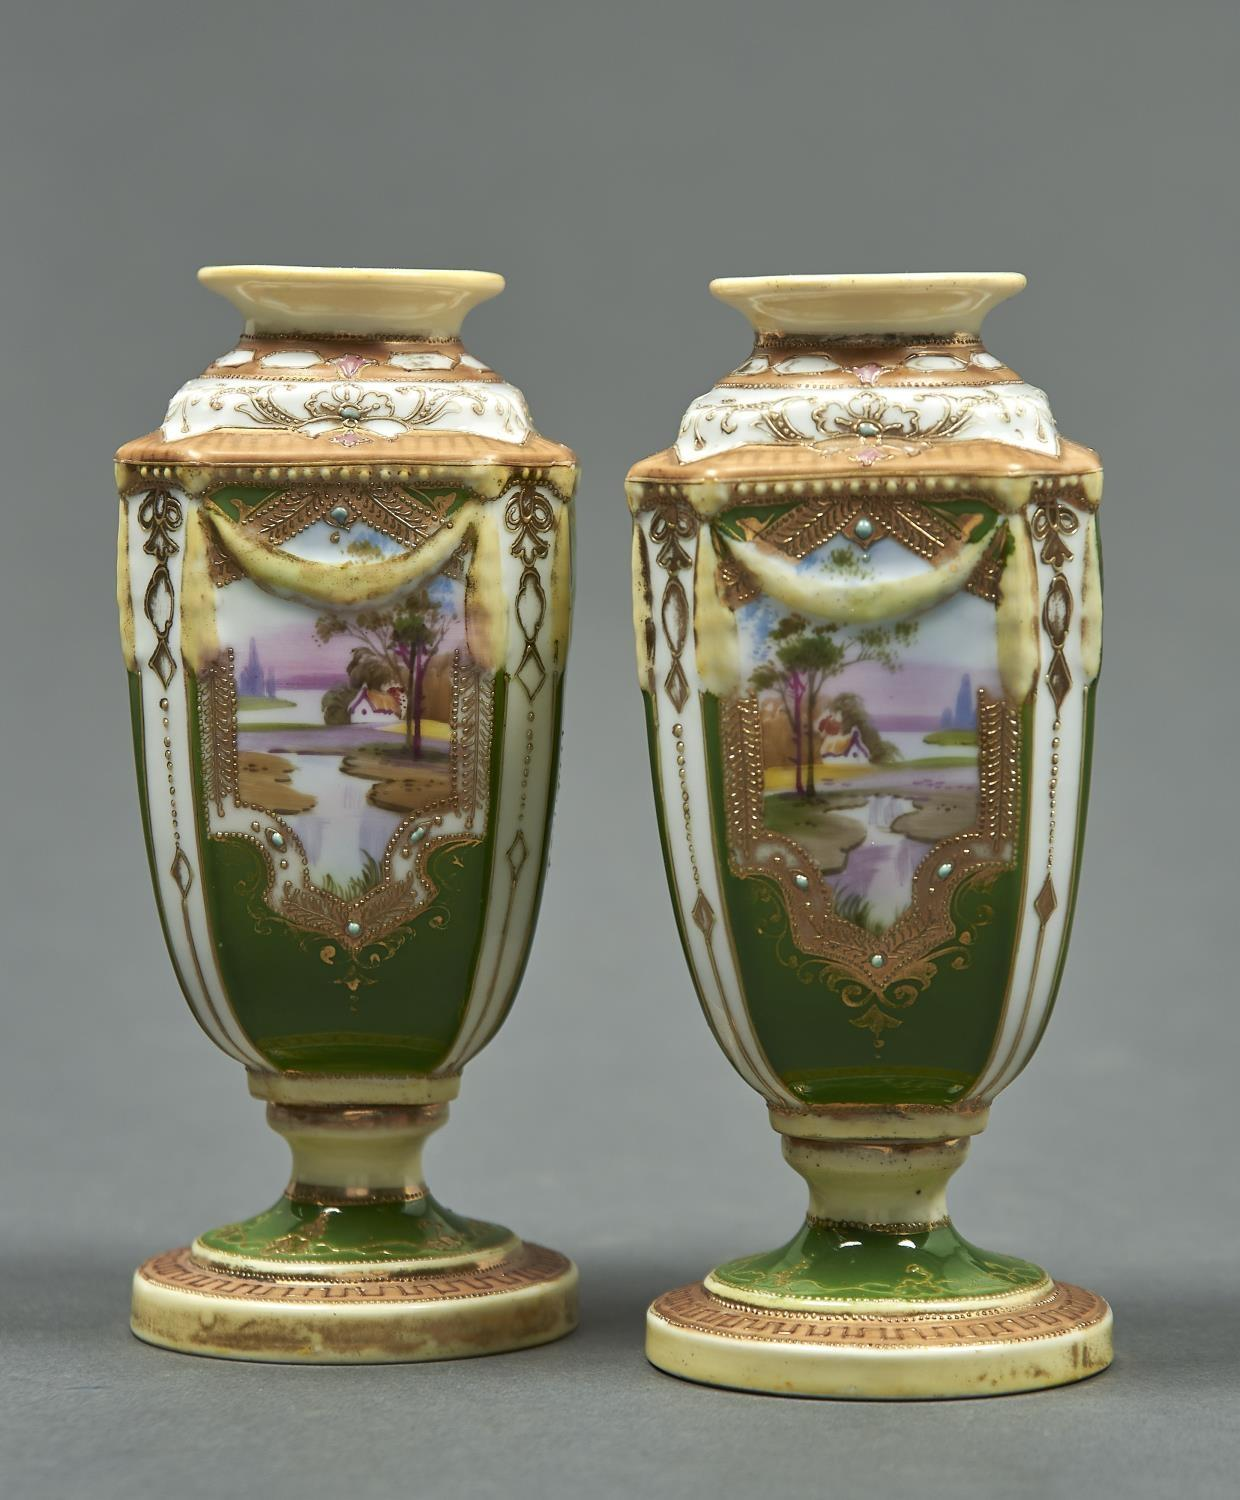 A PAIR OF NORITAKE GREEN GROUND VASES, EARLY 20TH C, OF SQUARE SECTION AND MOULDED WITH SWAGS,